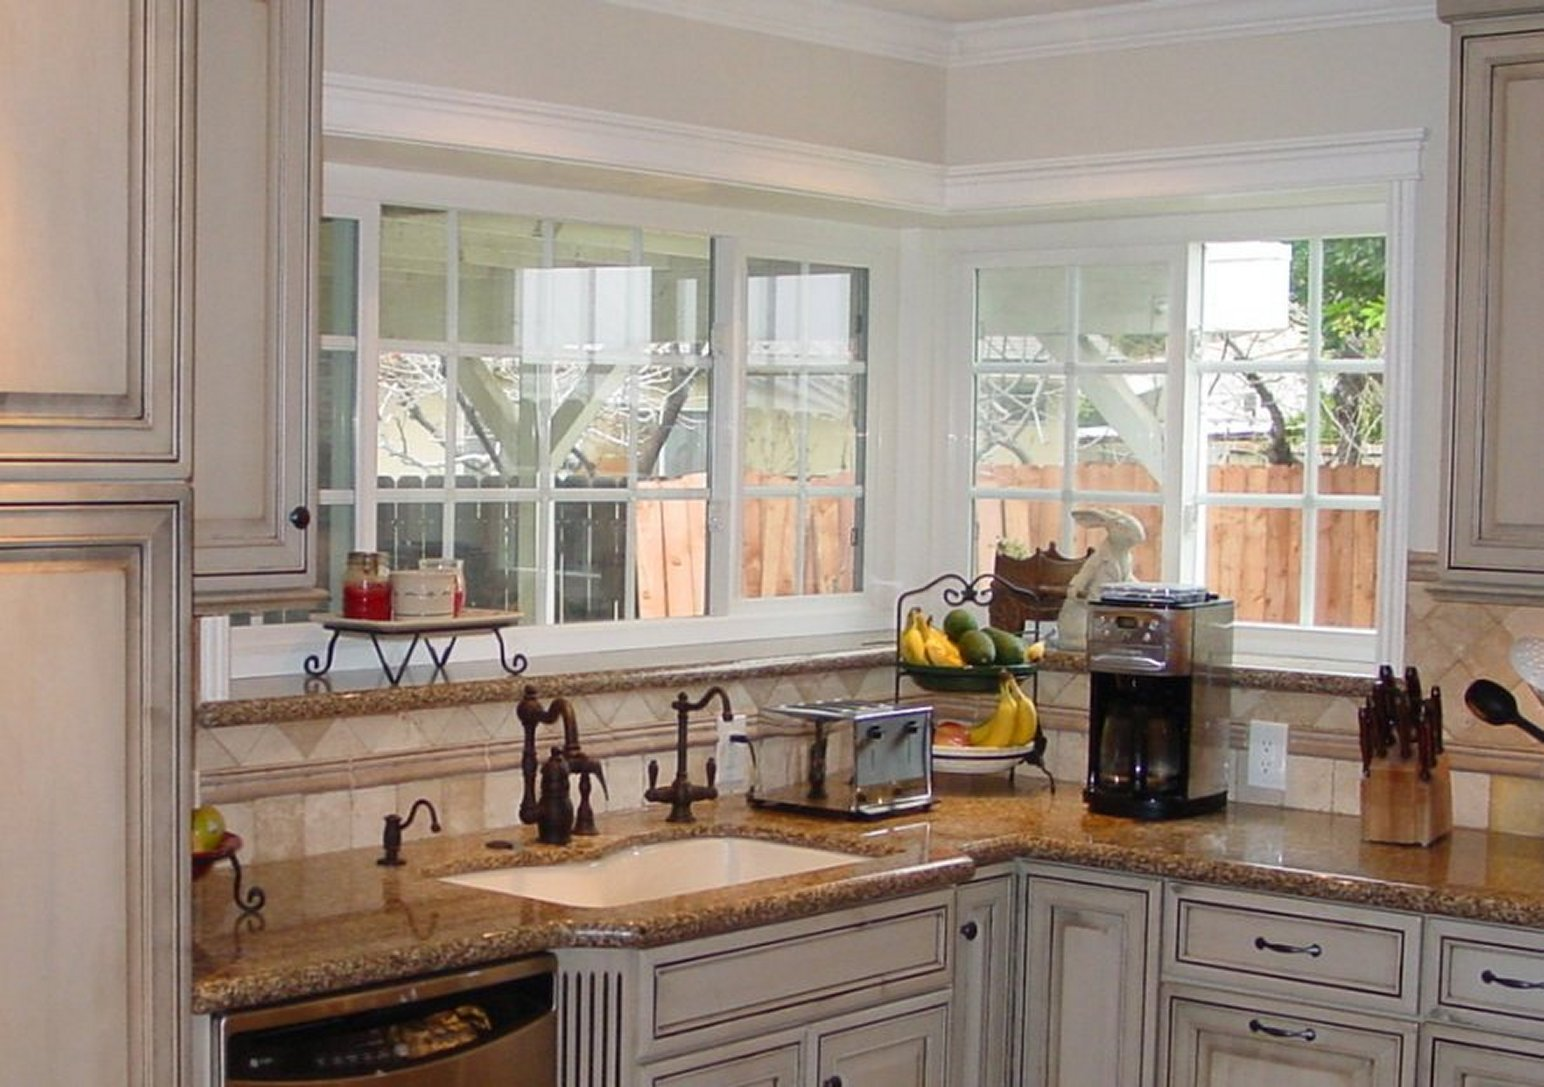 Green House Windows for Kitchen for Fresh and Natural ...